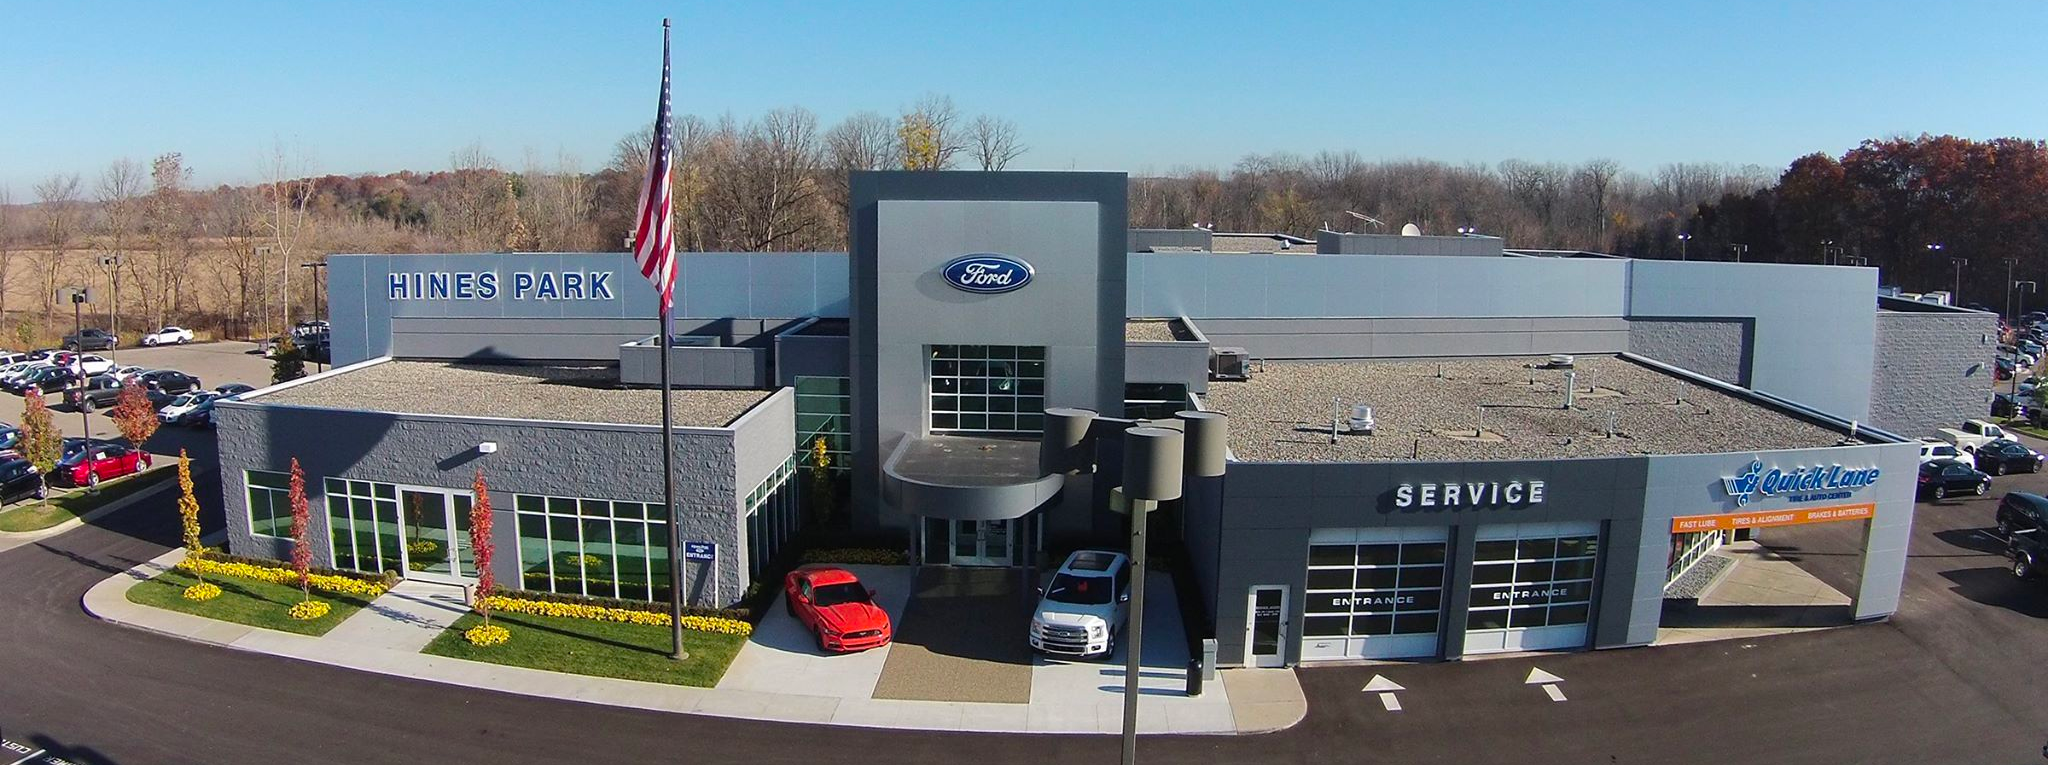 Hines Park Ford, Inc.